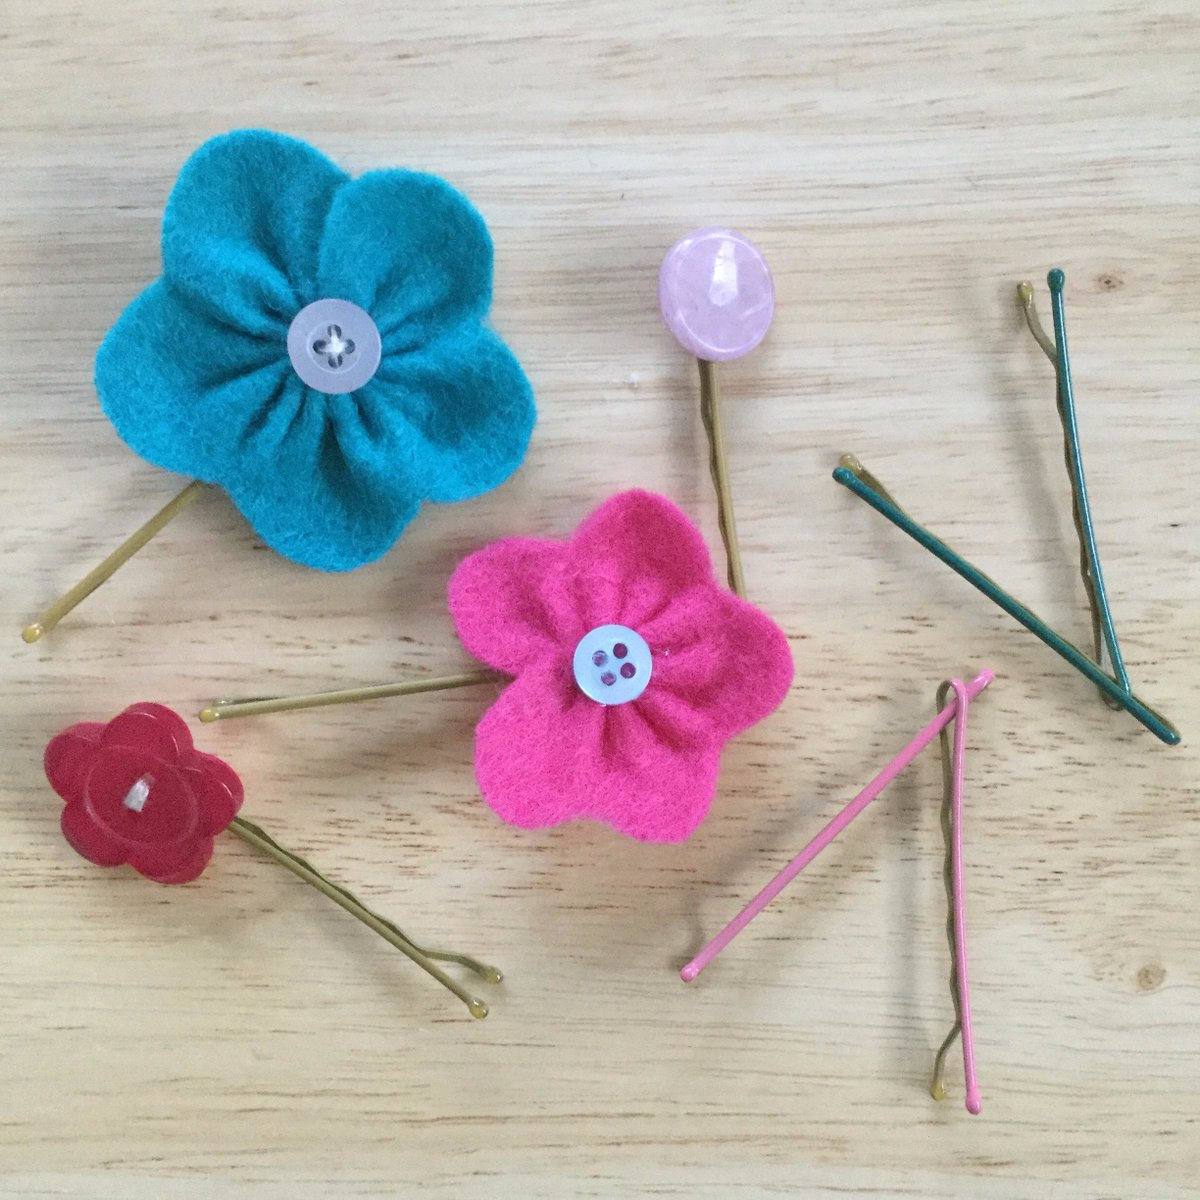 Latest Blog Post! Up-cycled Bobby Pins you don&#39;t want to lose!  http:// wp.me/p6sR9e-a7  &nbsp;   #aBoxofButtons #SewingProject<br>http://pic.twitter.com/20vVO0im6C